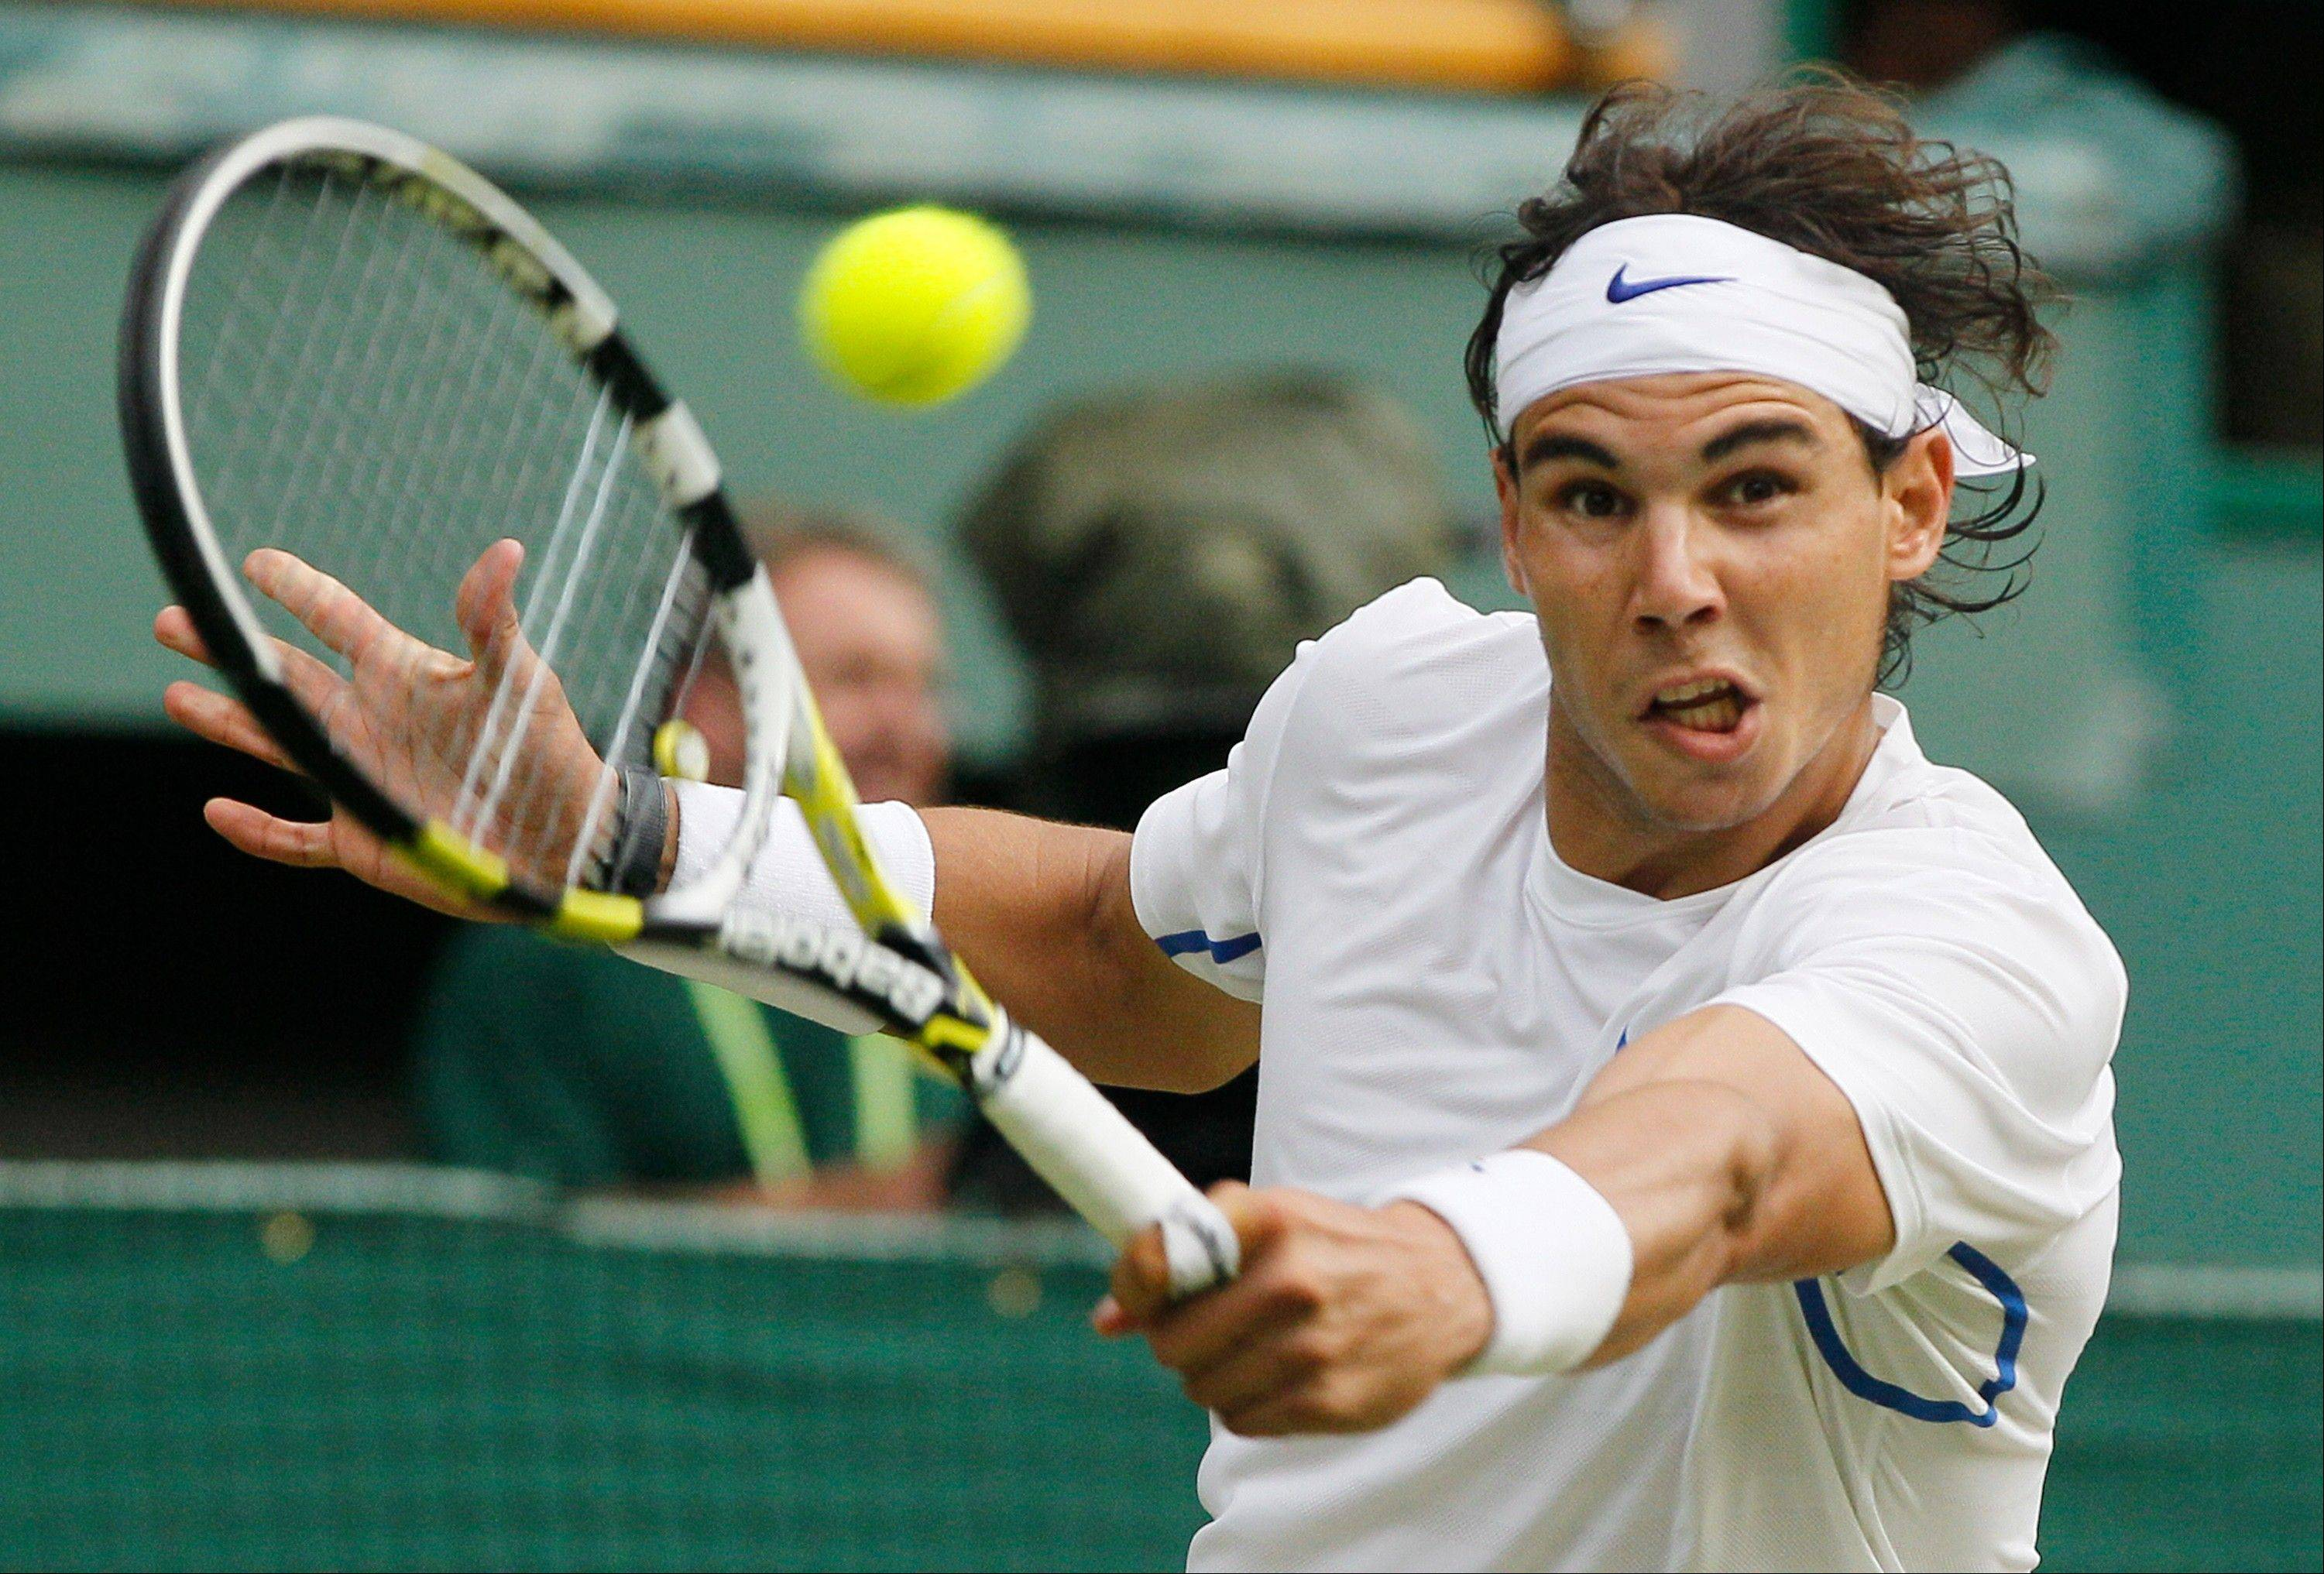 Spain's Rafael Nadal returns the ball to Argentina's Juan Martin Del Potro at Wimbledon on Monday.